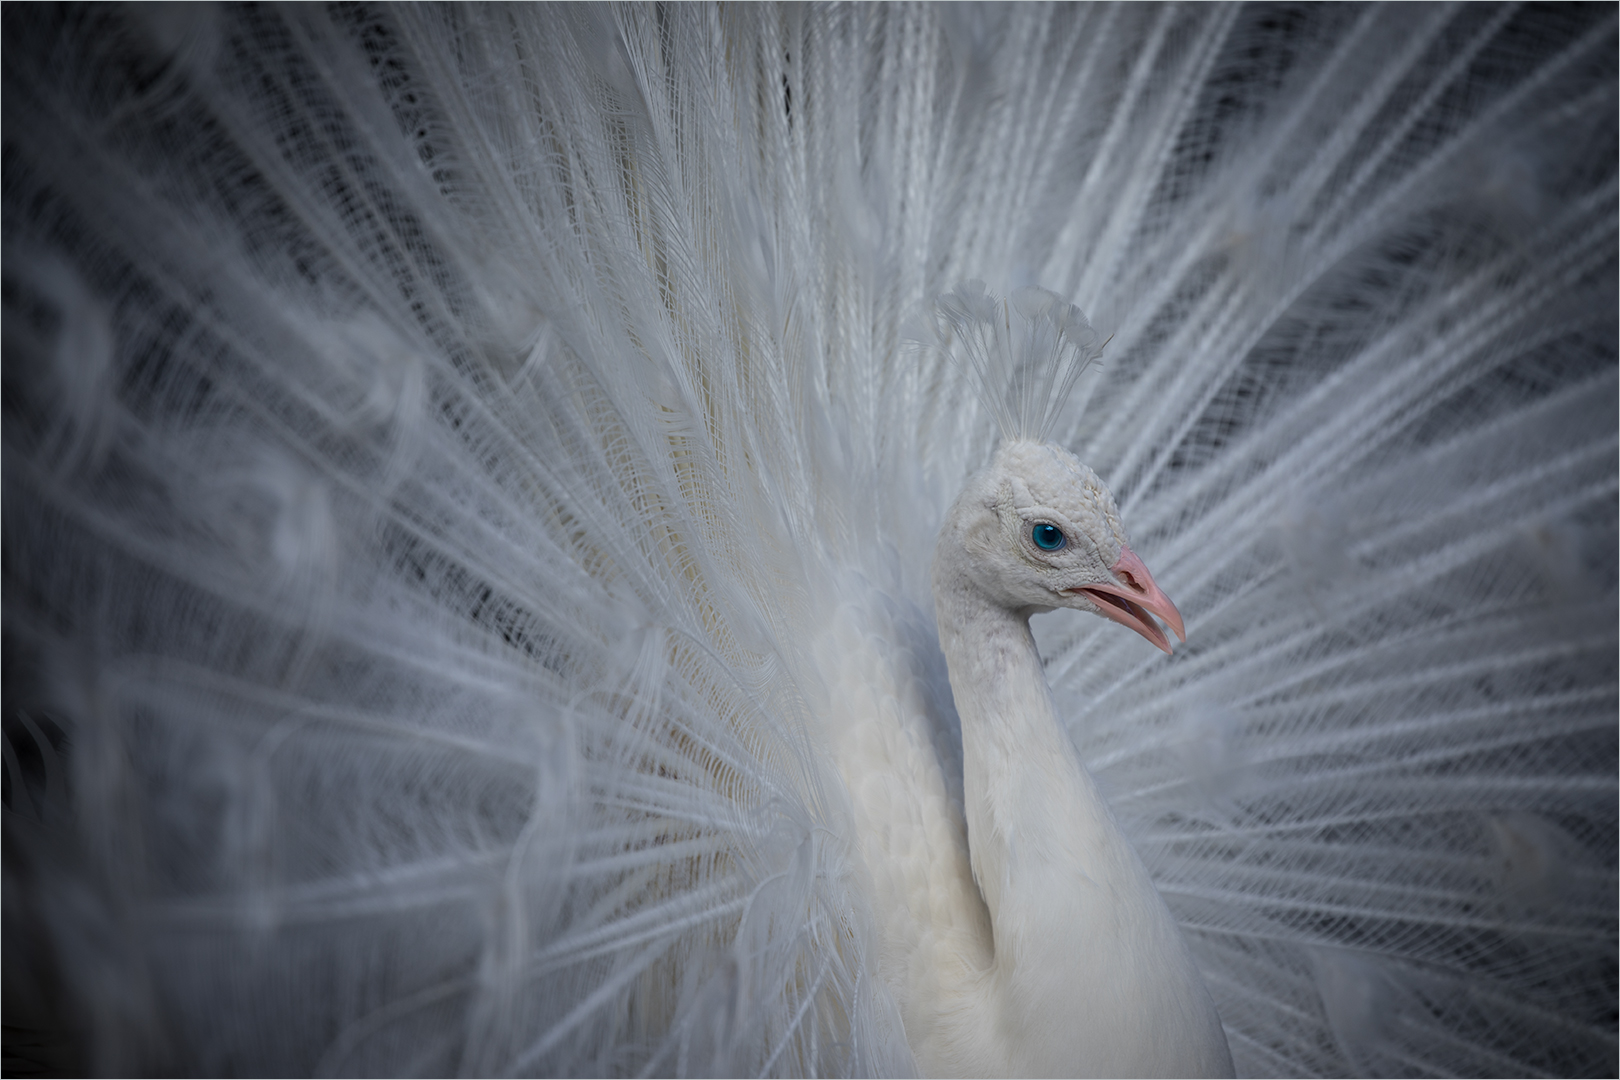 DS001-White-Peacock-1-Stephen-Burgstahler